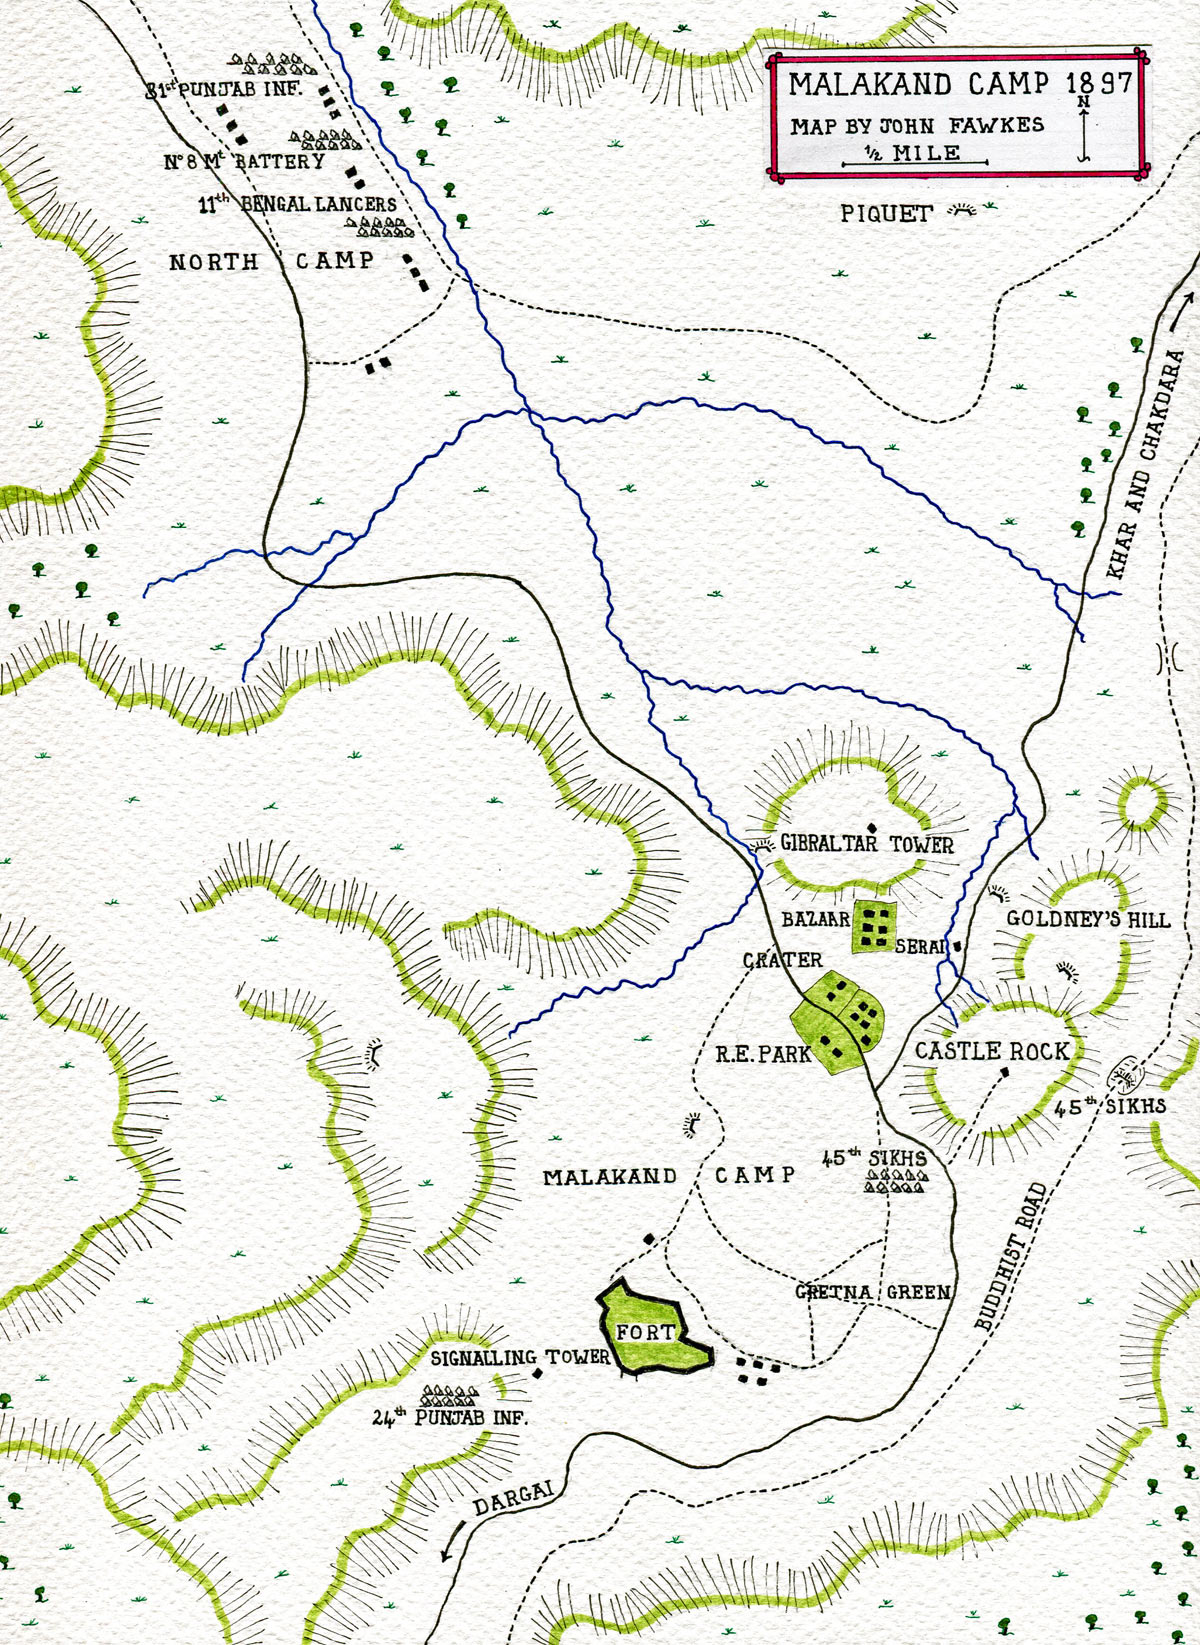 Map of Malakand Camp: Malakand Rising, 26th July to 22nd August 1897 on the North-West Frontier of India: map by John Fawkes